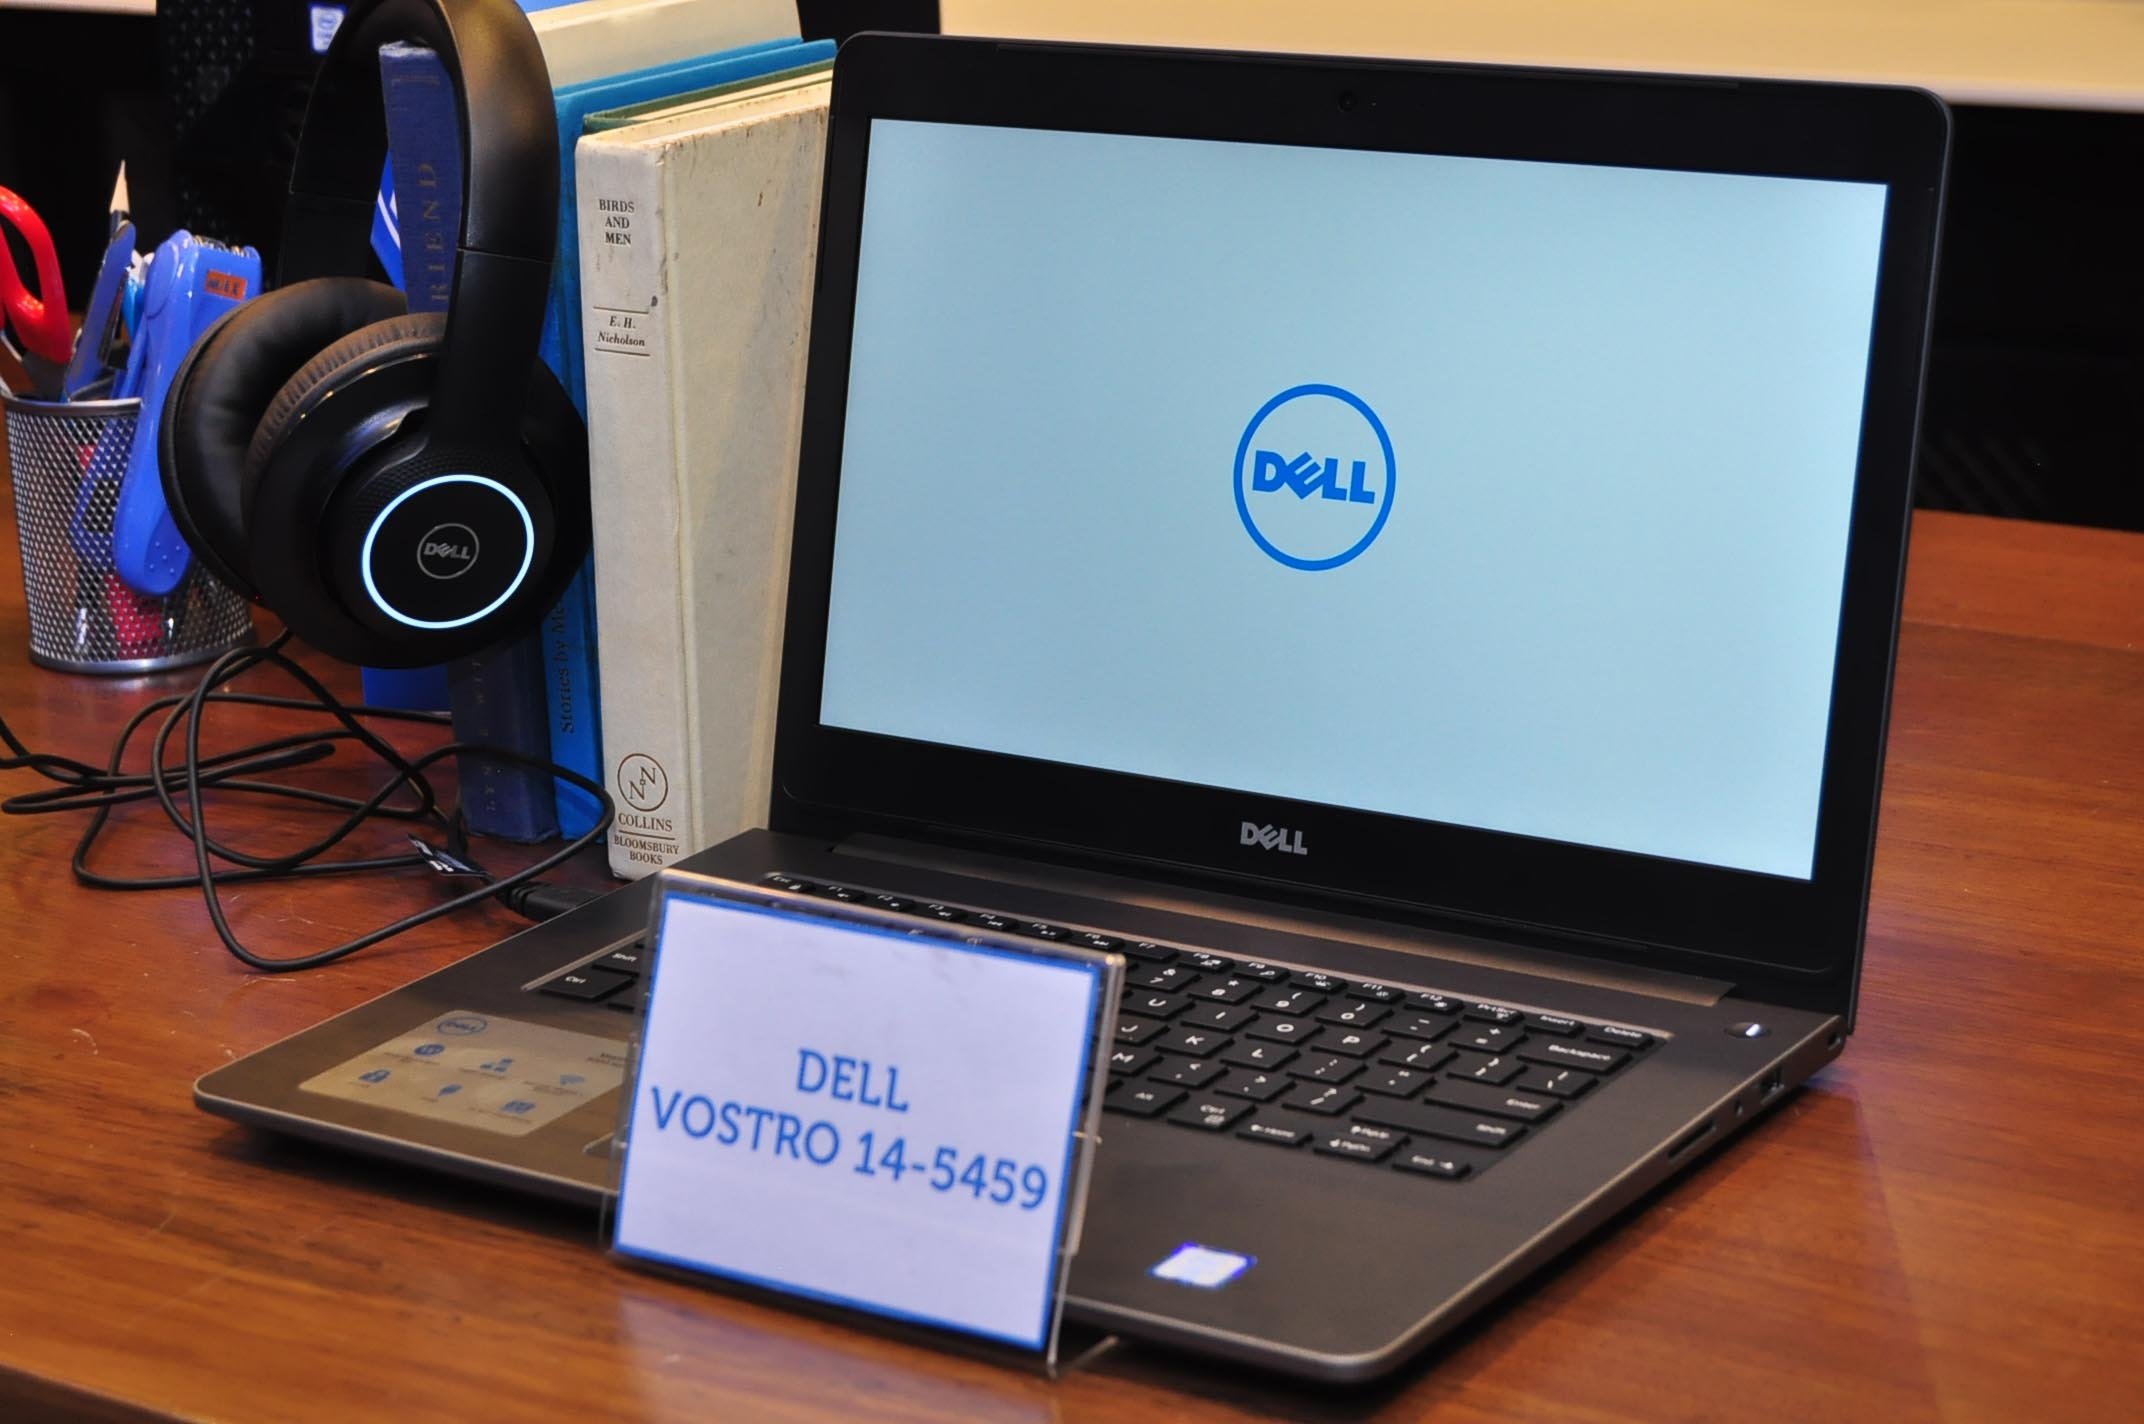 Dell Rides On Robust Pc Market With New Vostro Laptops For Smbs Laptop Repair Hp Makati 14 5459 Series